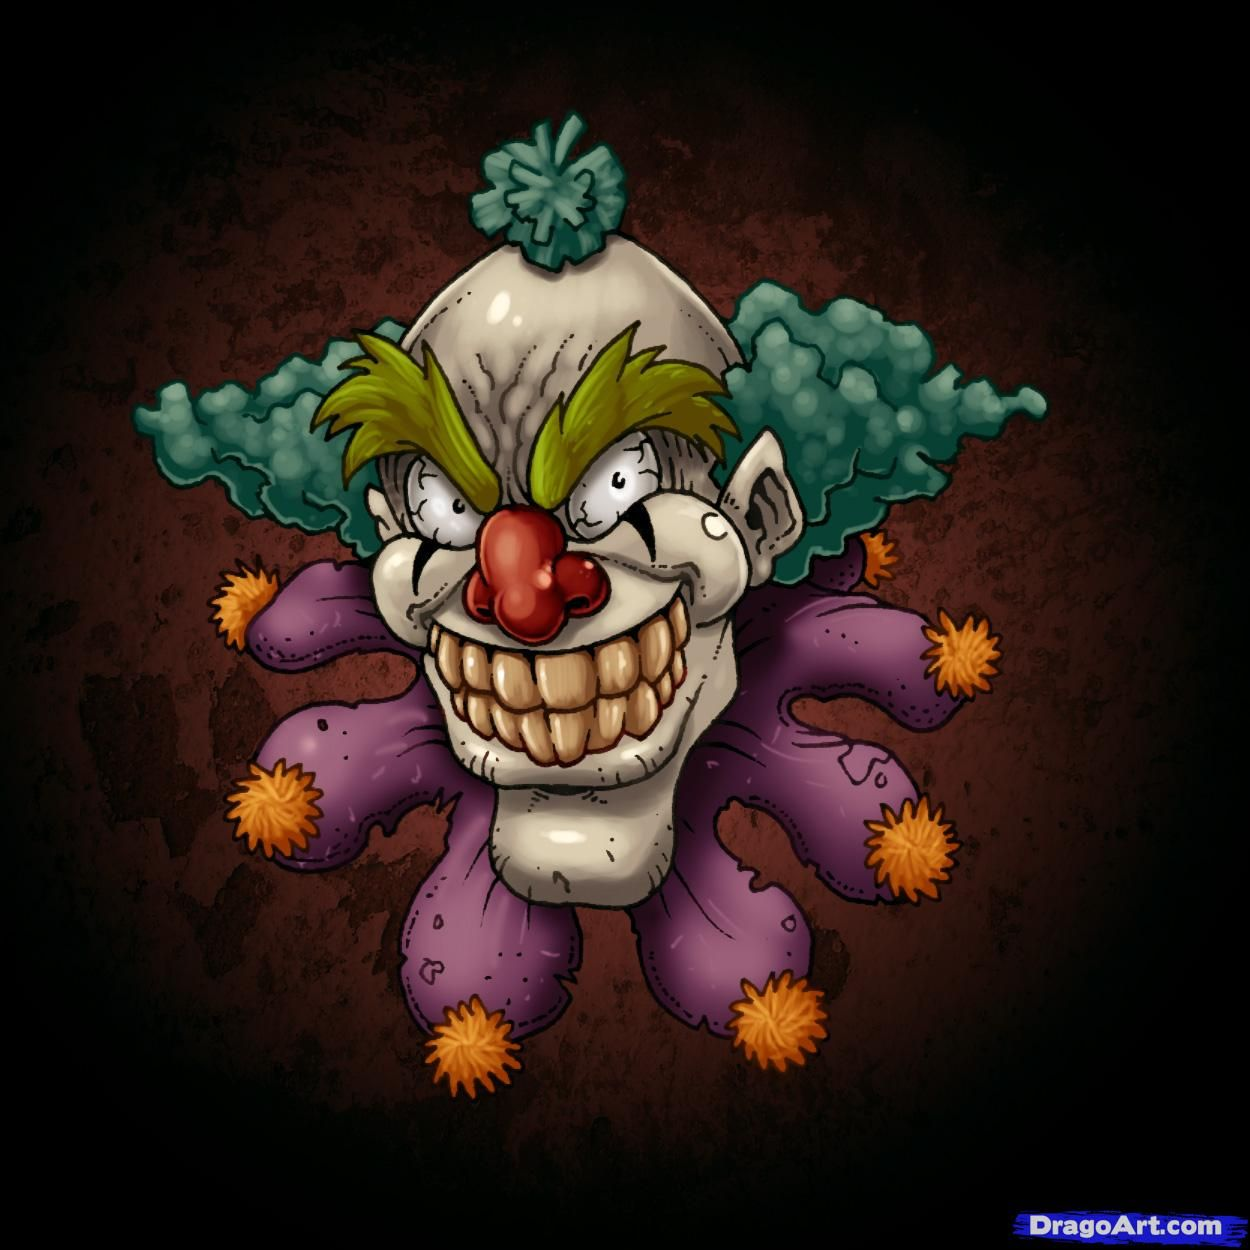 1250x1250 Clowns That Are Scary Evil Clown Inside Taco Bus Xpx Scary